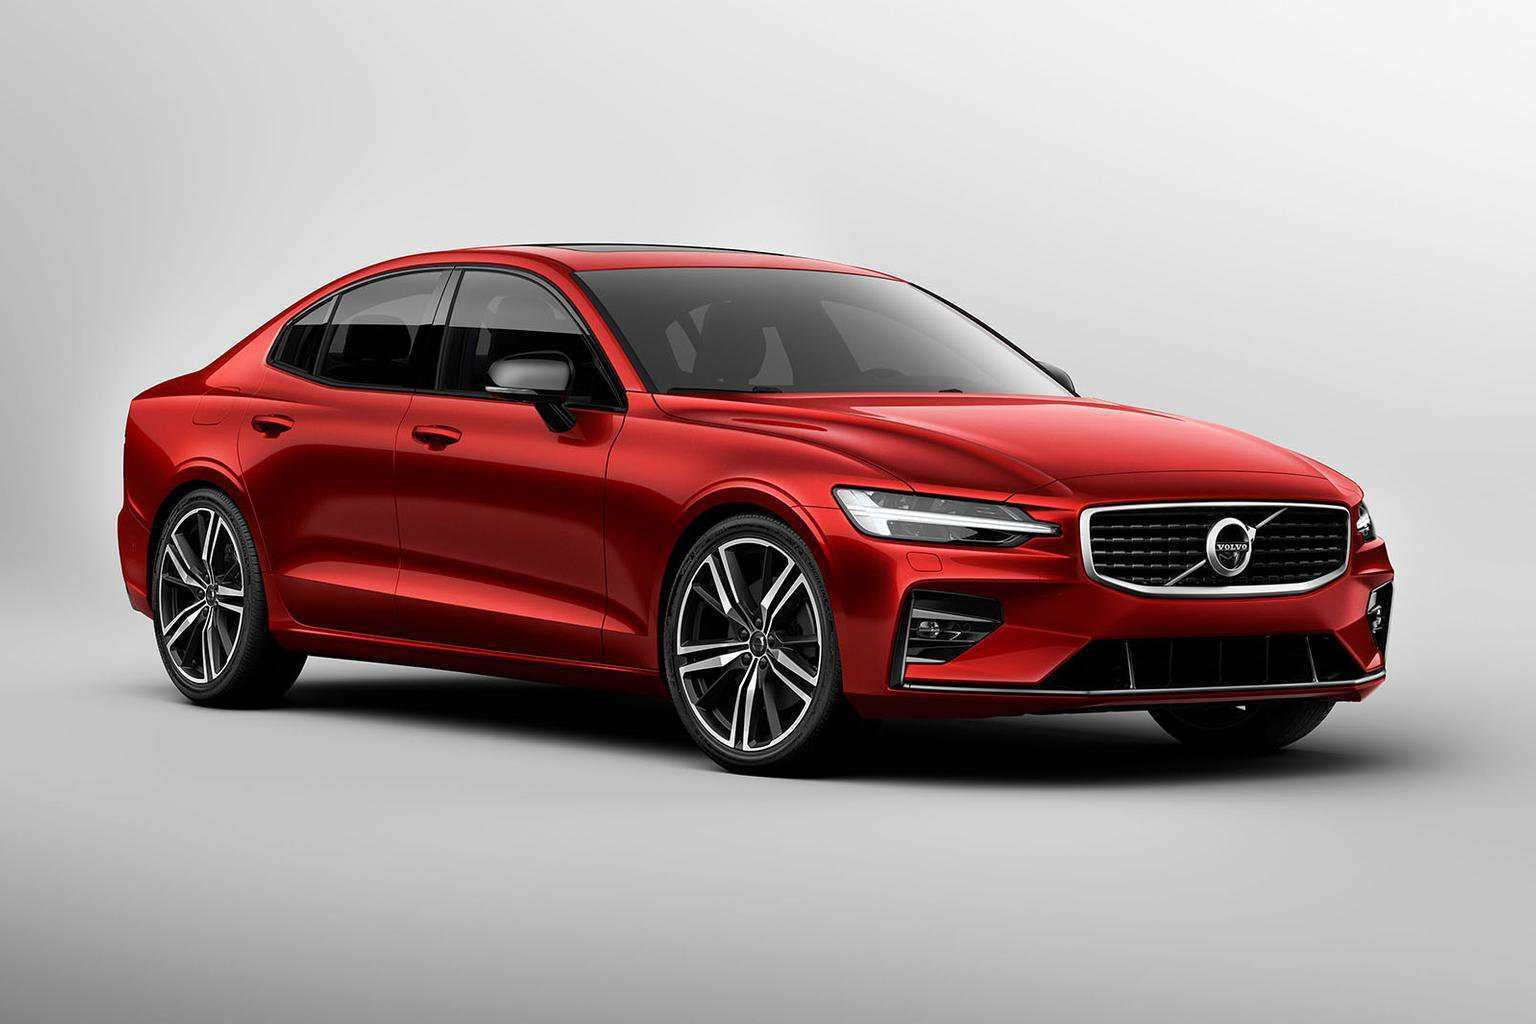 74 All New Volvo V60 2019 Dimensions Picture for Volvo V60 2019 Dimensions